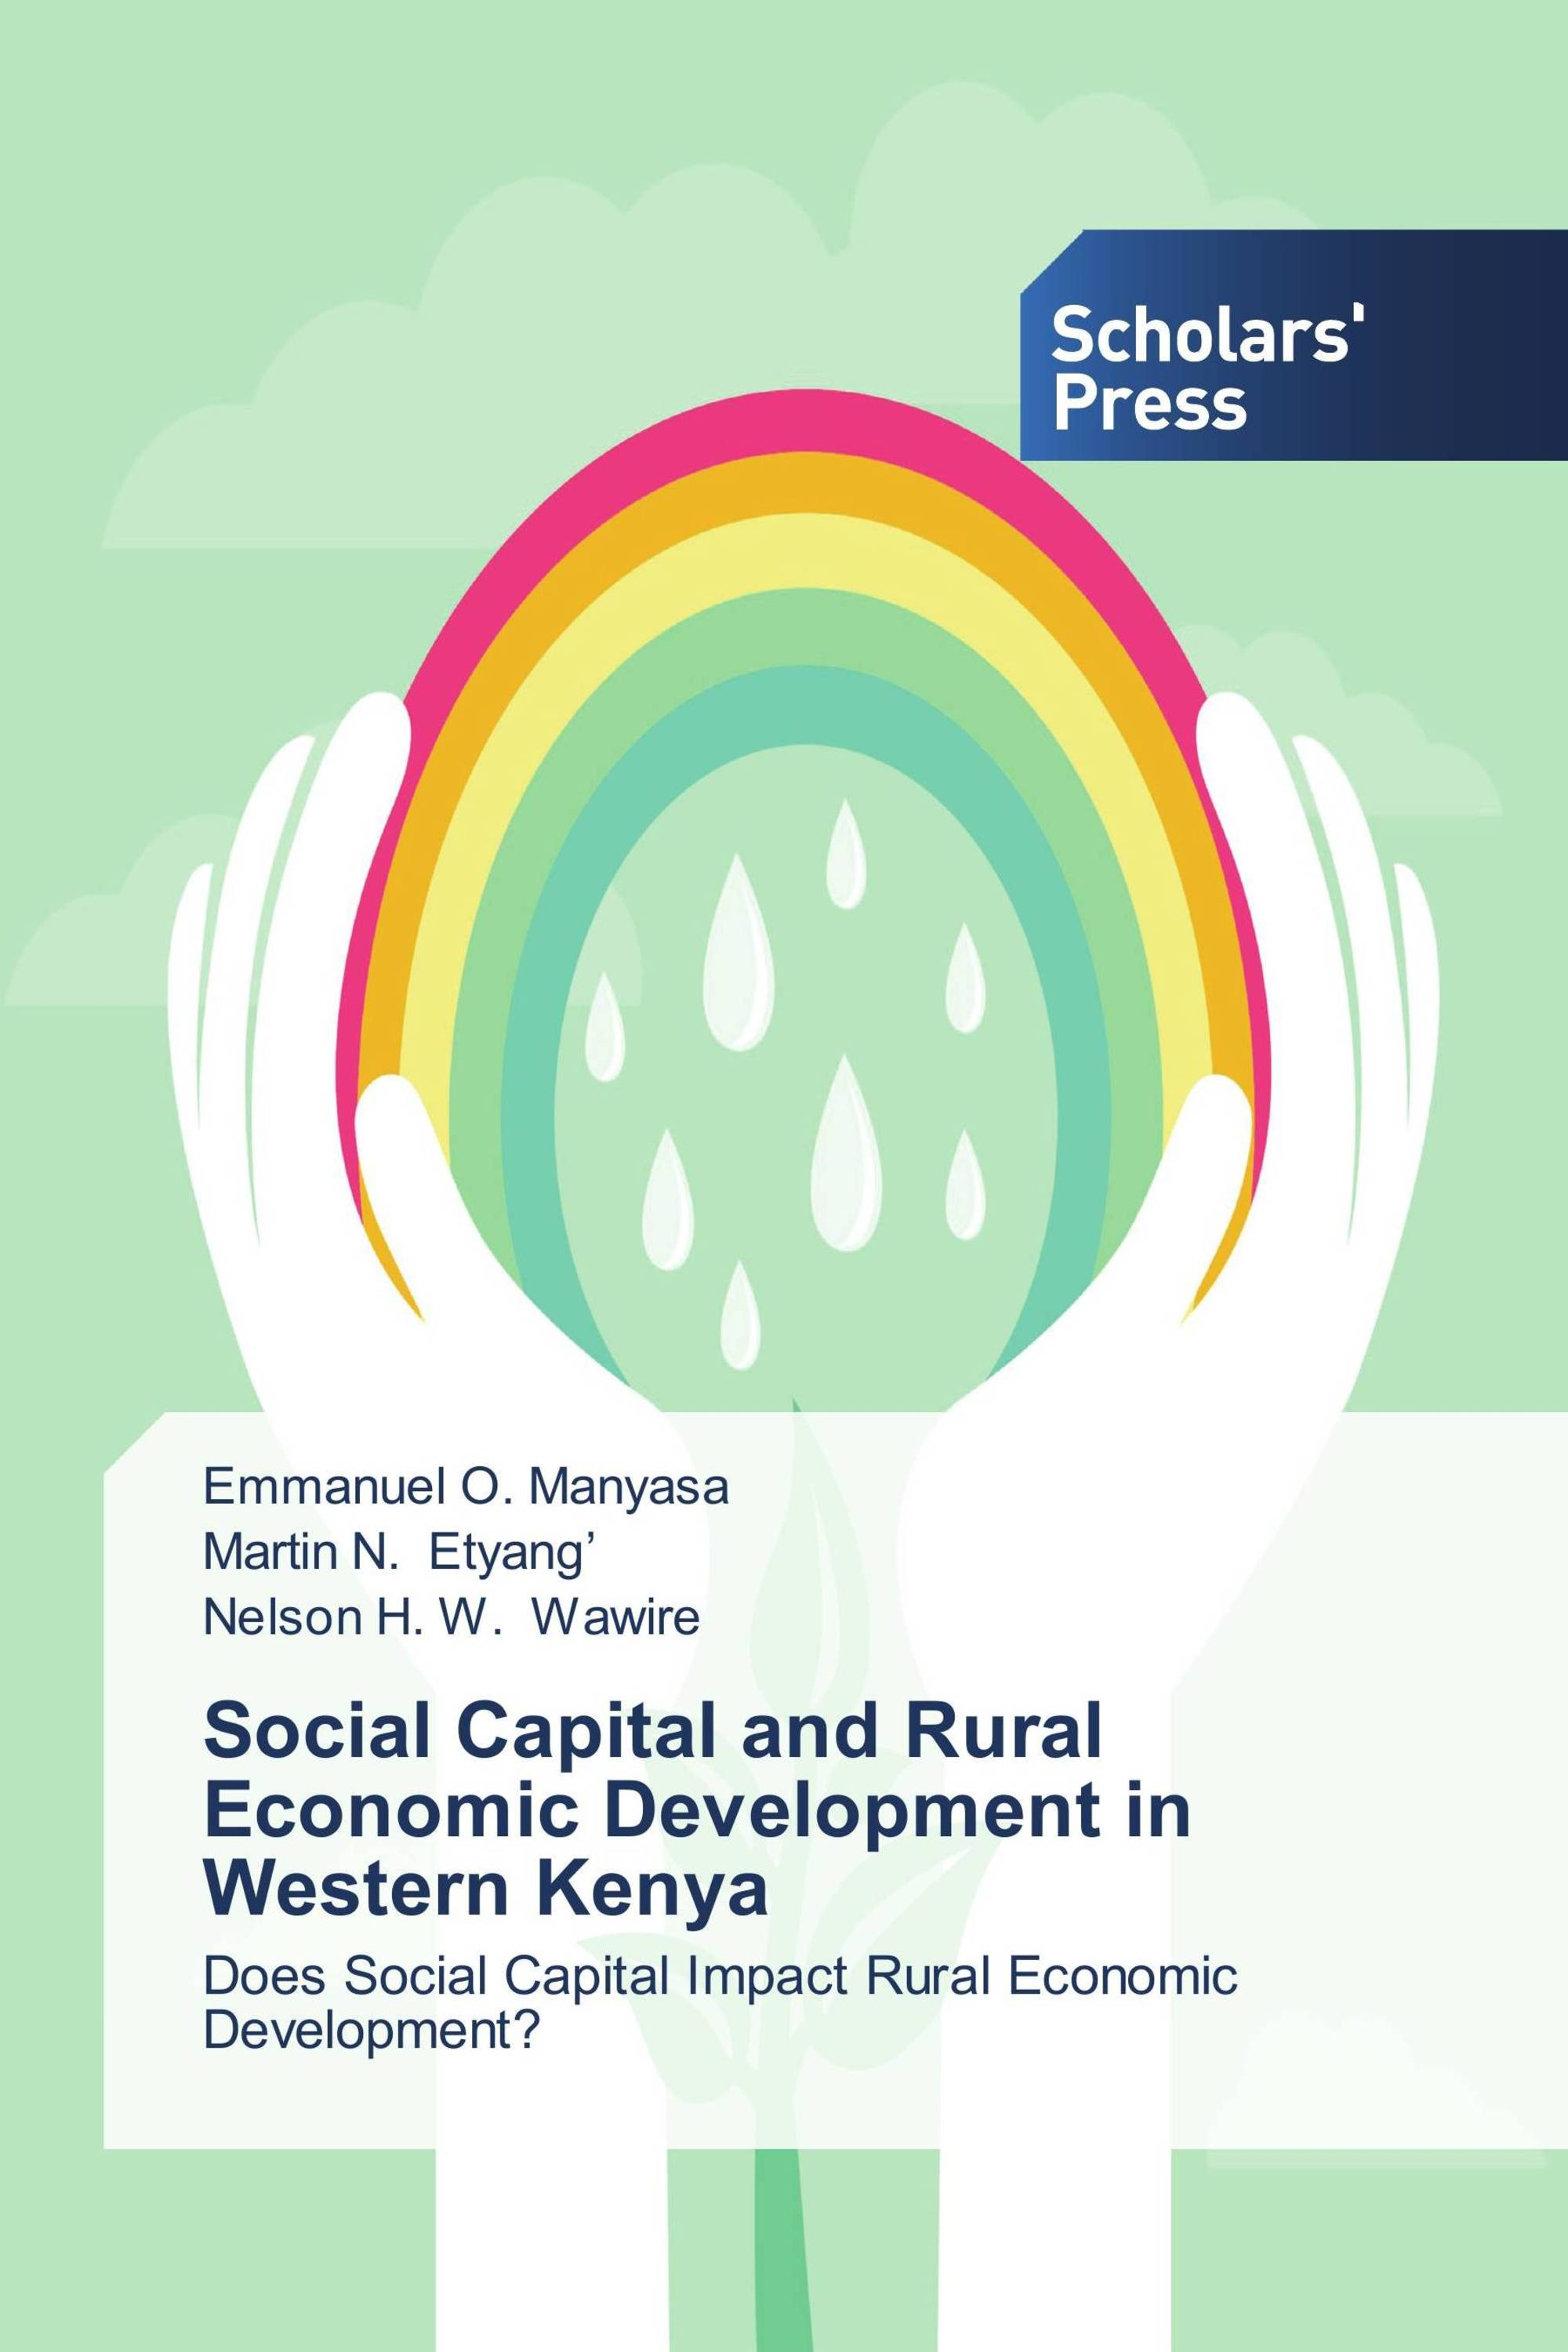 capital and economic development Human capital in economic development: from labour productivity to macroeconomic impact kristinn hermannsson1 and patrizio lecca2 microeconometric evidence reveals high private returns to education, most prominently in low-income countries however, it is disputed to what extent this translates into a.